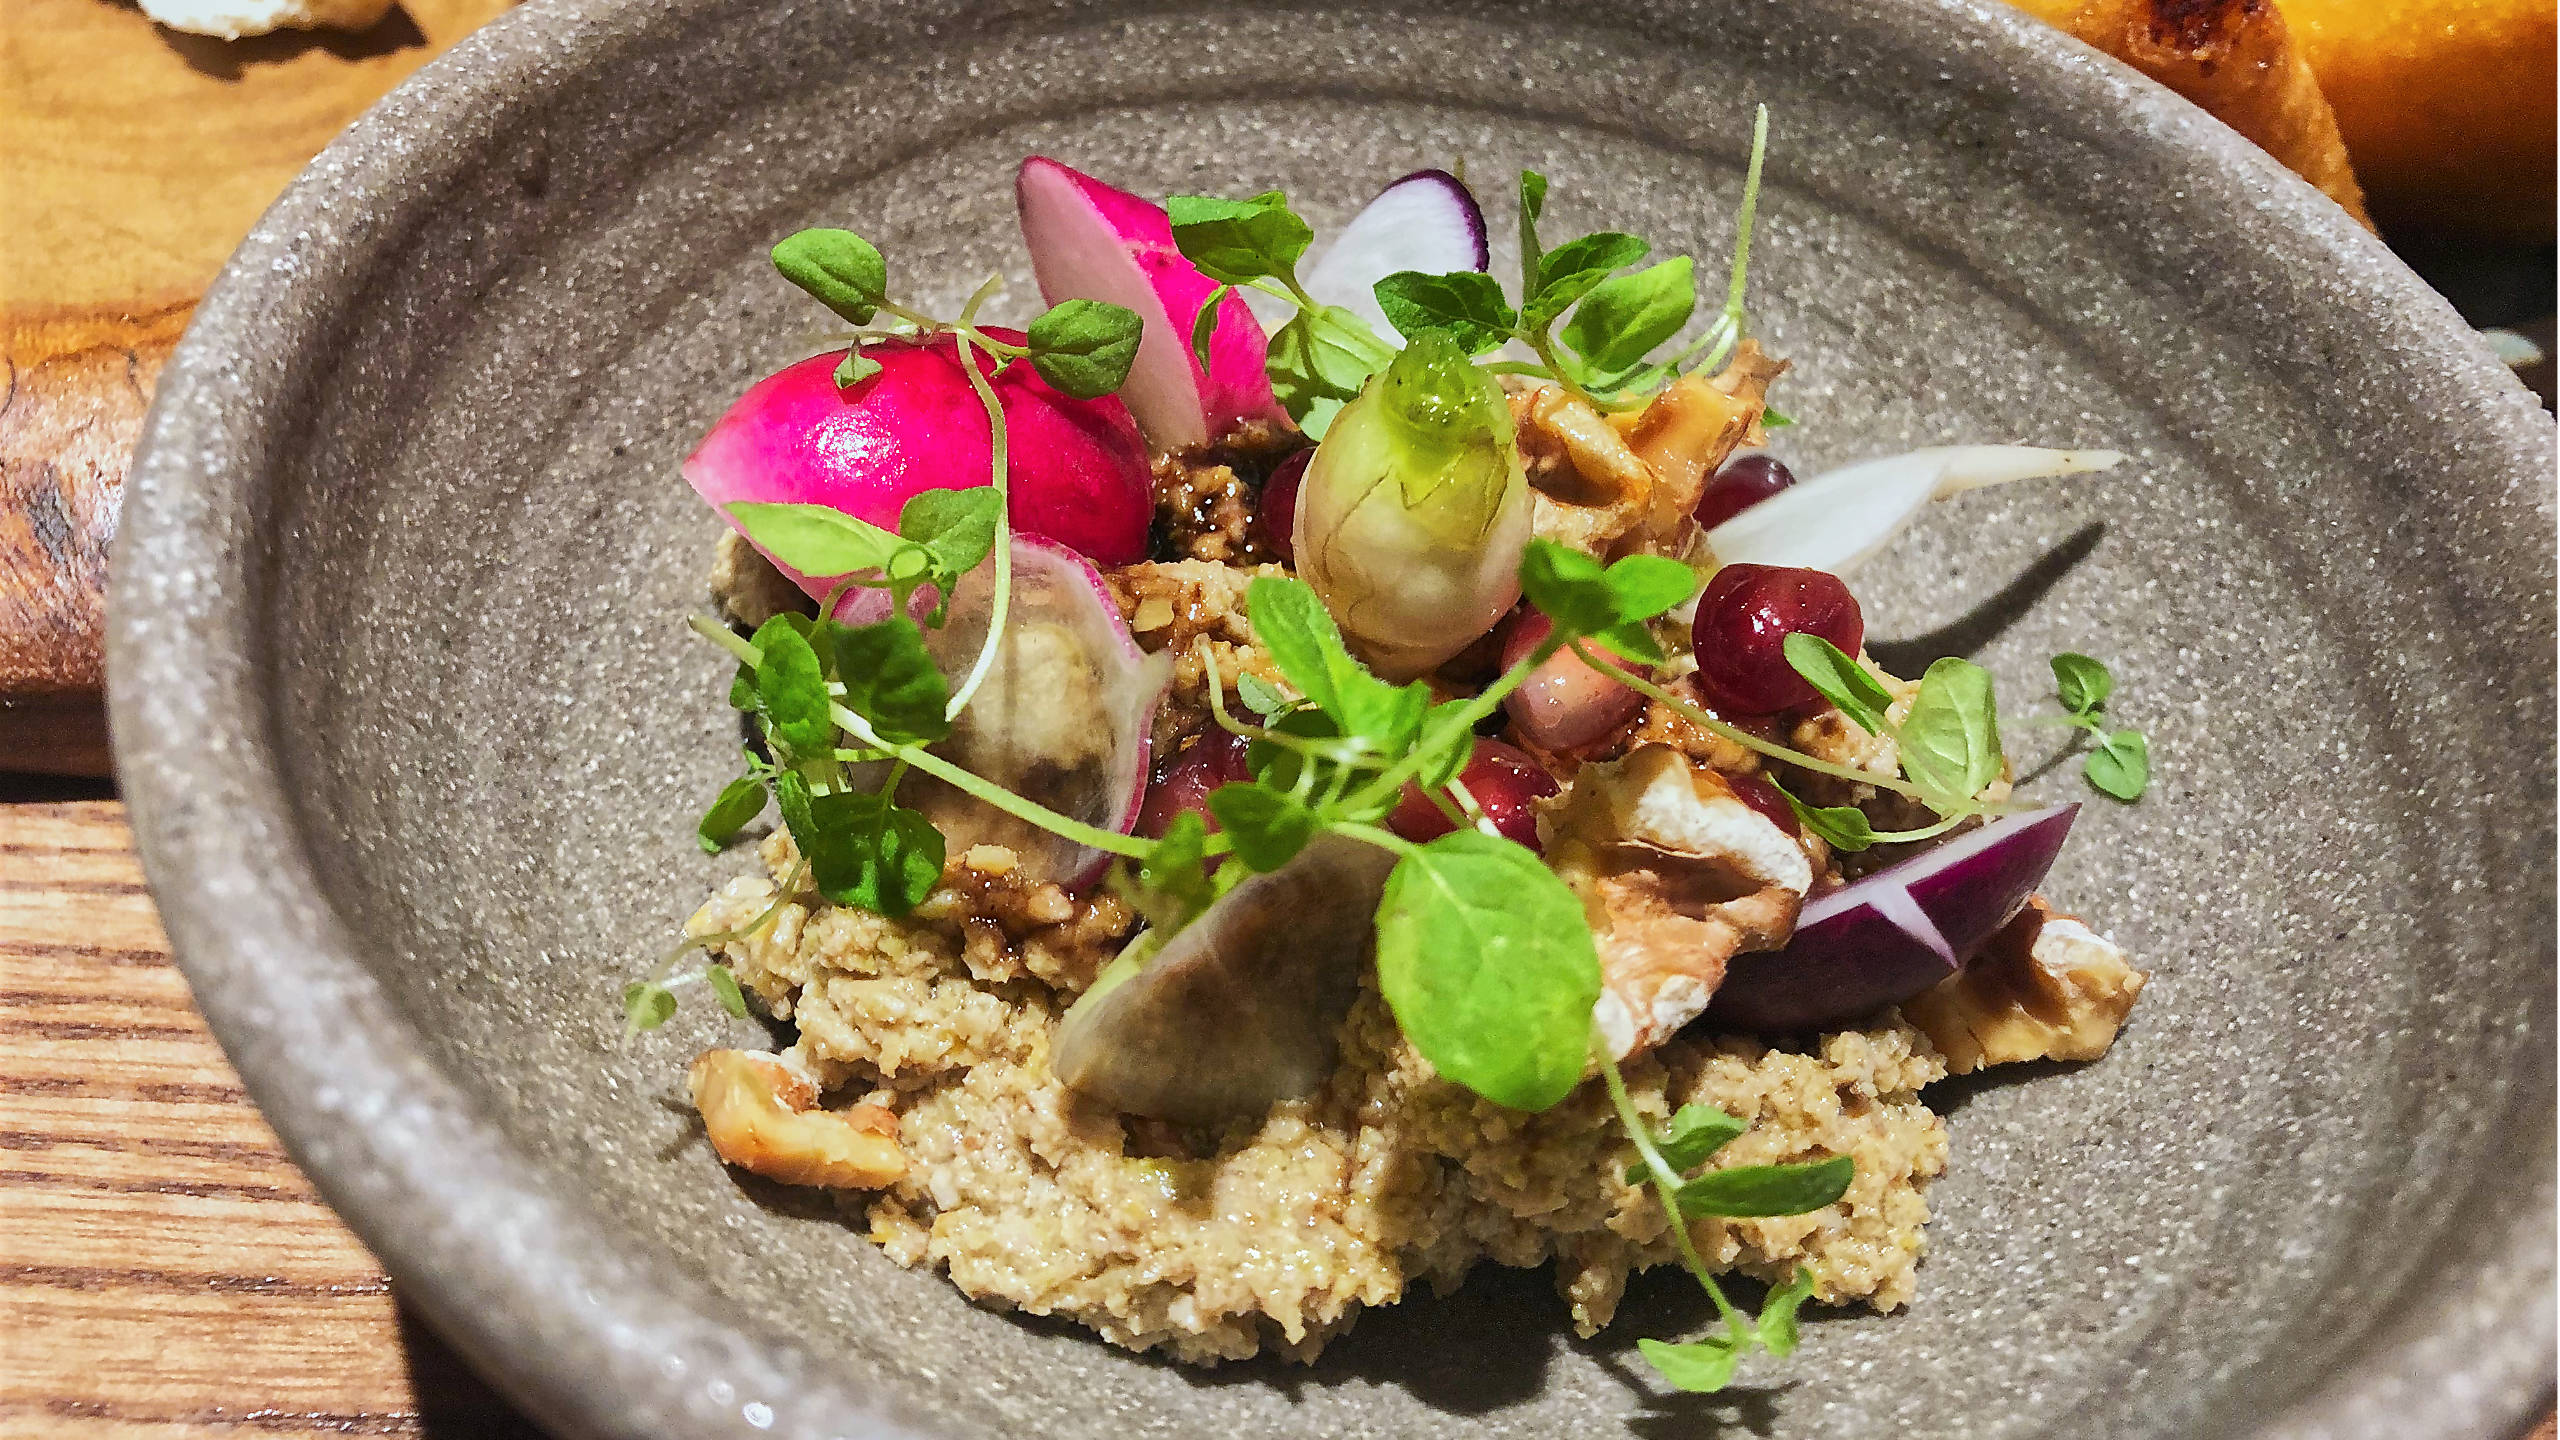 A beautifully decorated dish of Smokey aubergine at Nutshell London